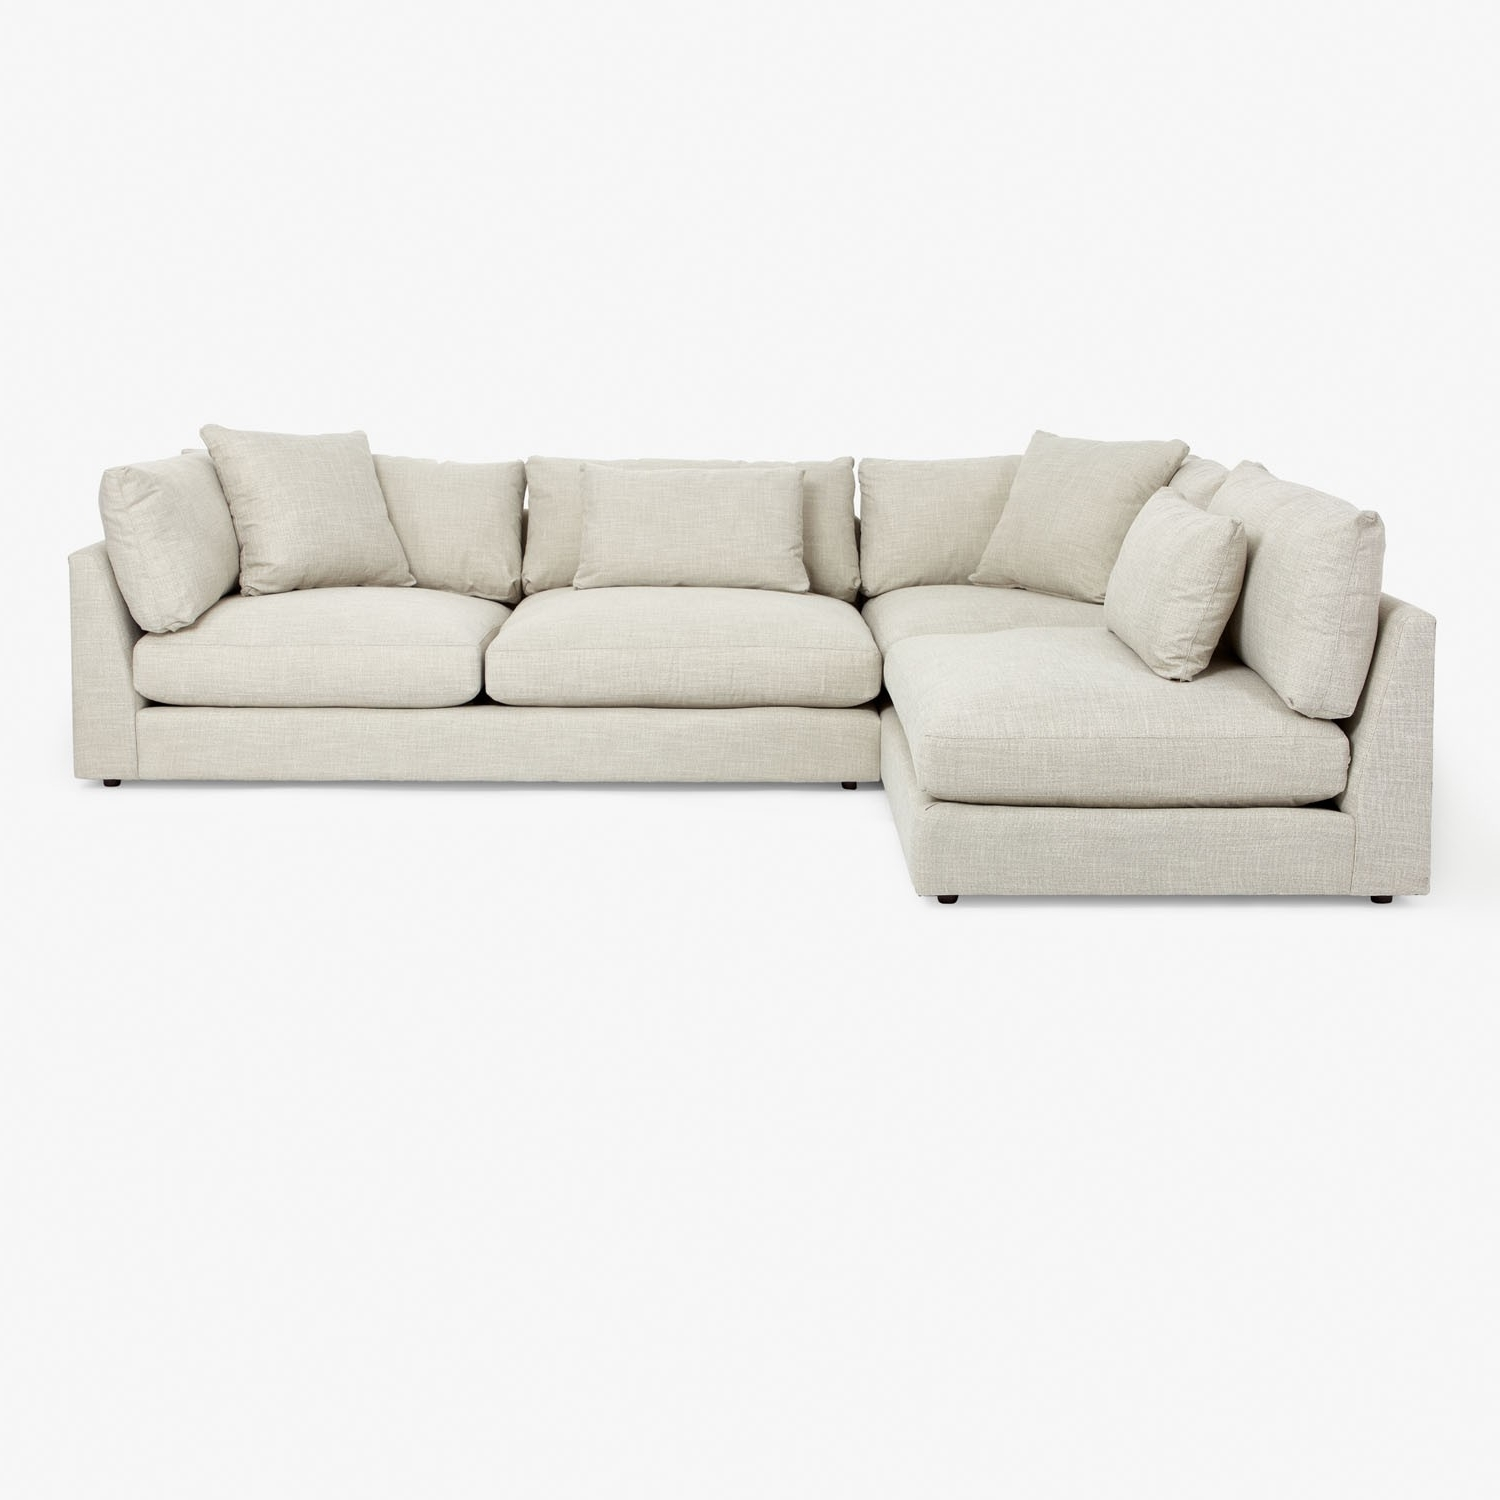 Nyc Sectional Sofas Regarding Famous Modern Sectional Sofas For Nyc Apartments At Abc Home (View 7 of 15)